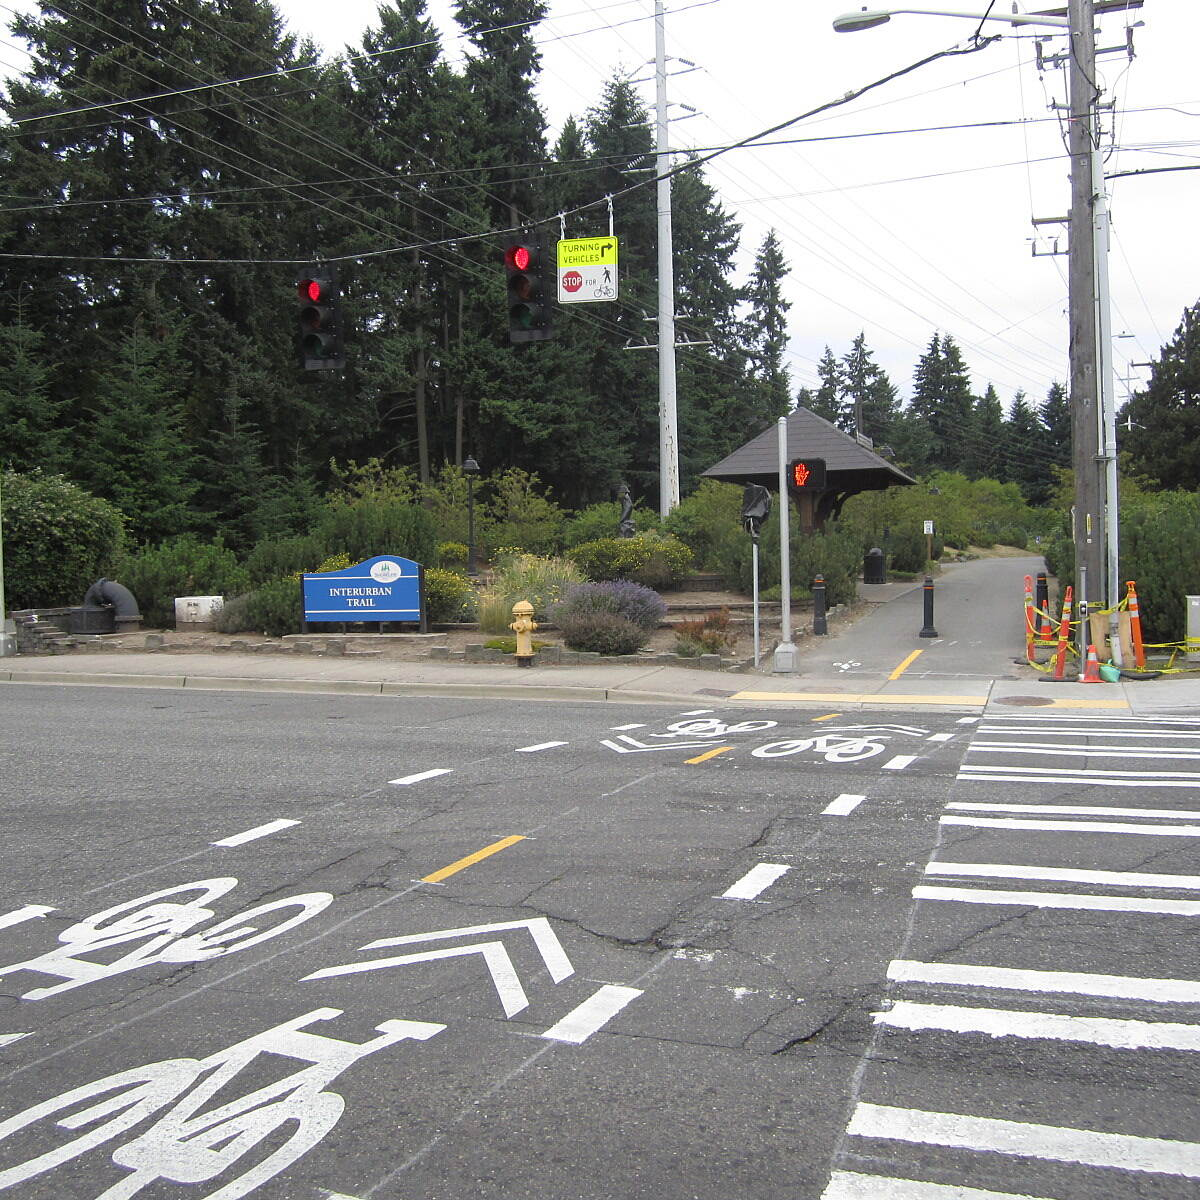 Interurban Trail (North) Interurban Trail North Trail at N. Linden Ave. and N. 145th